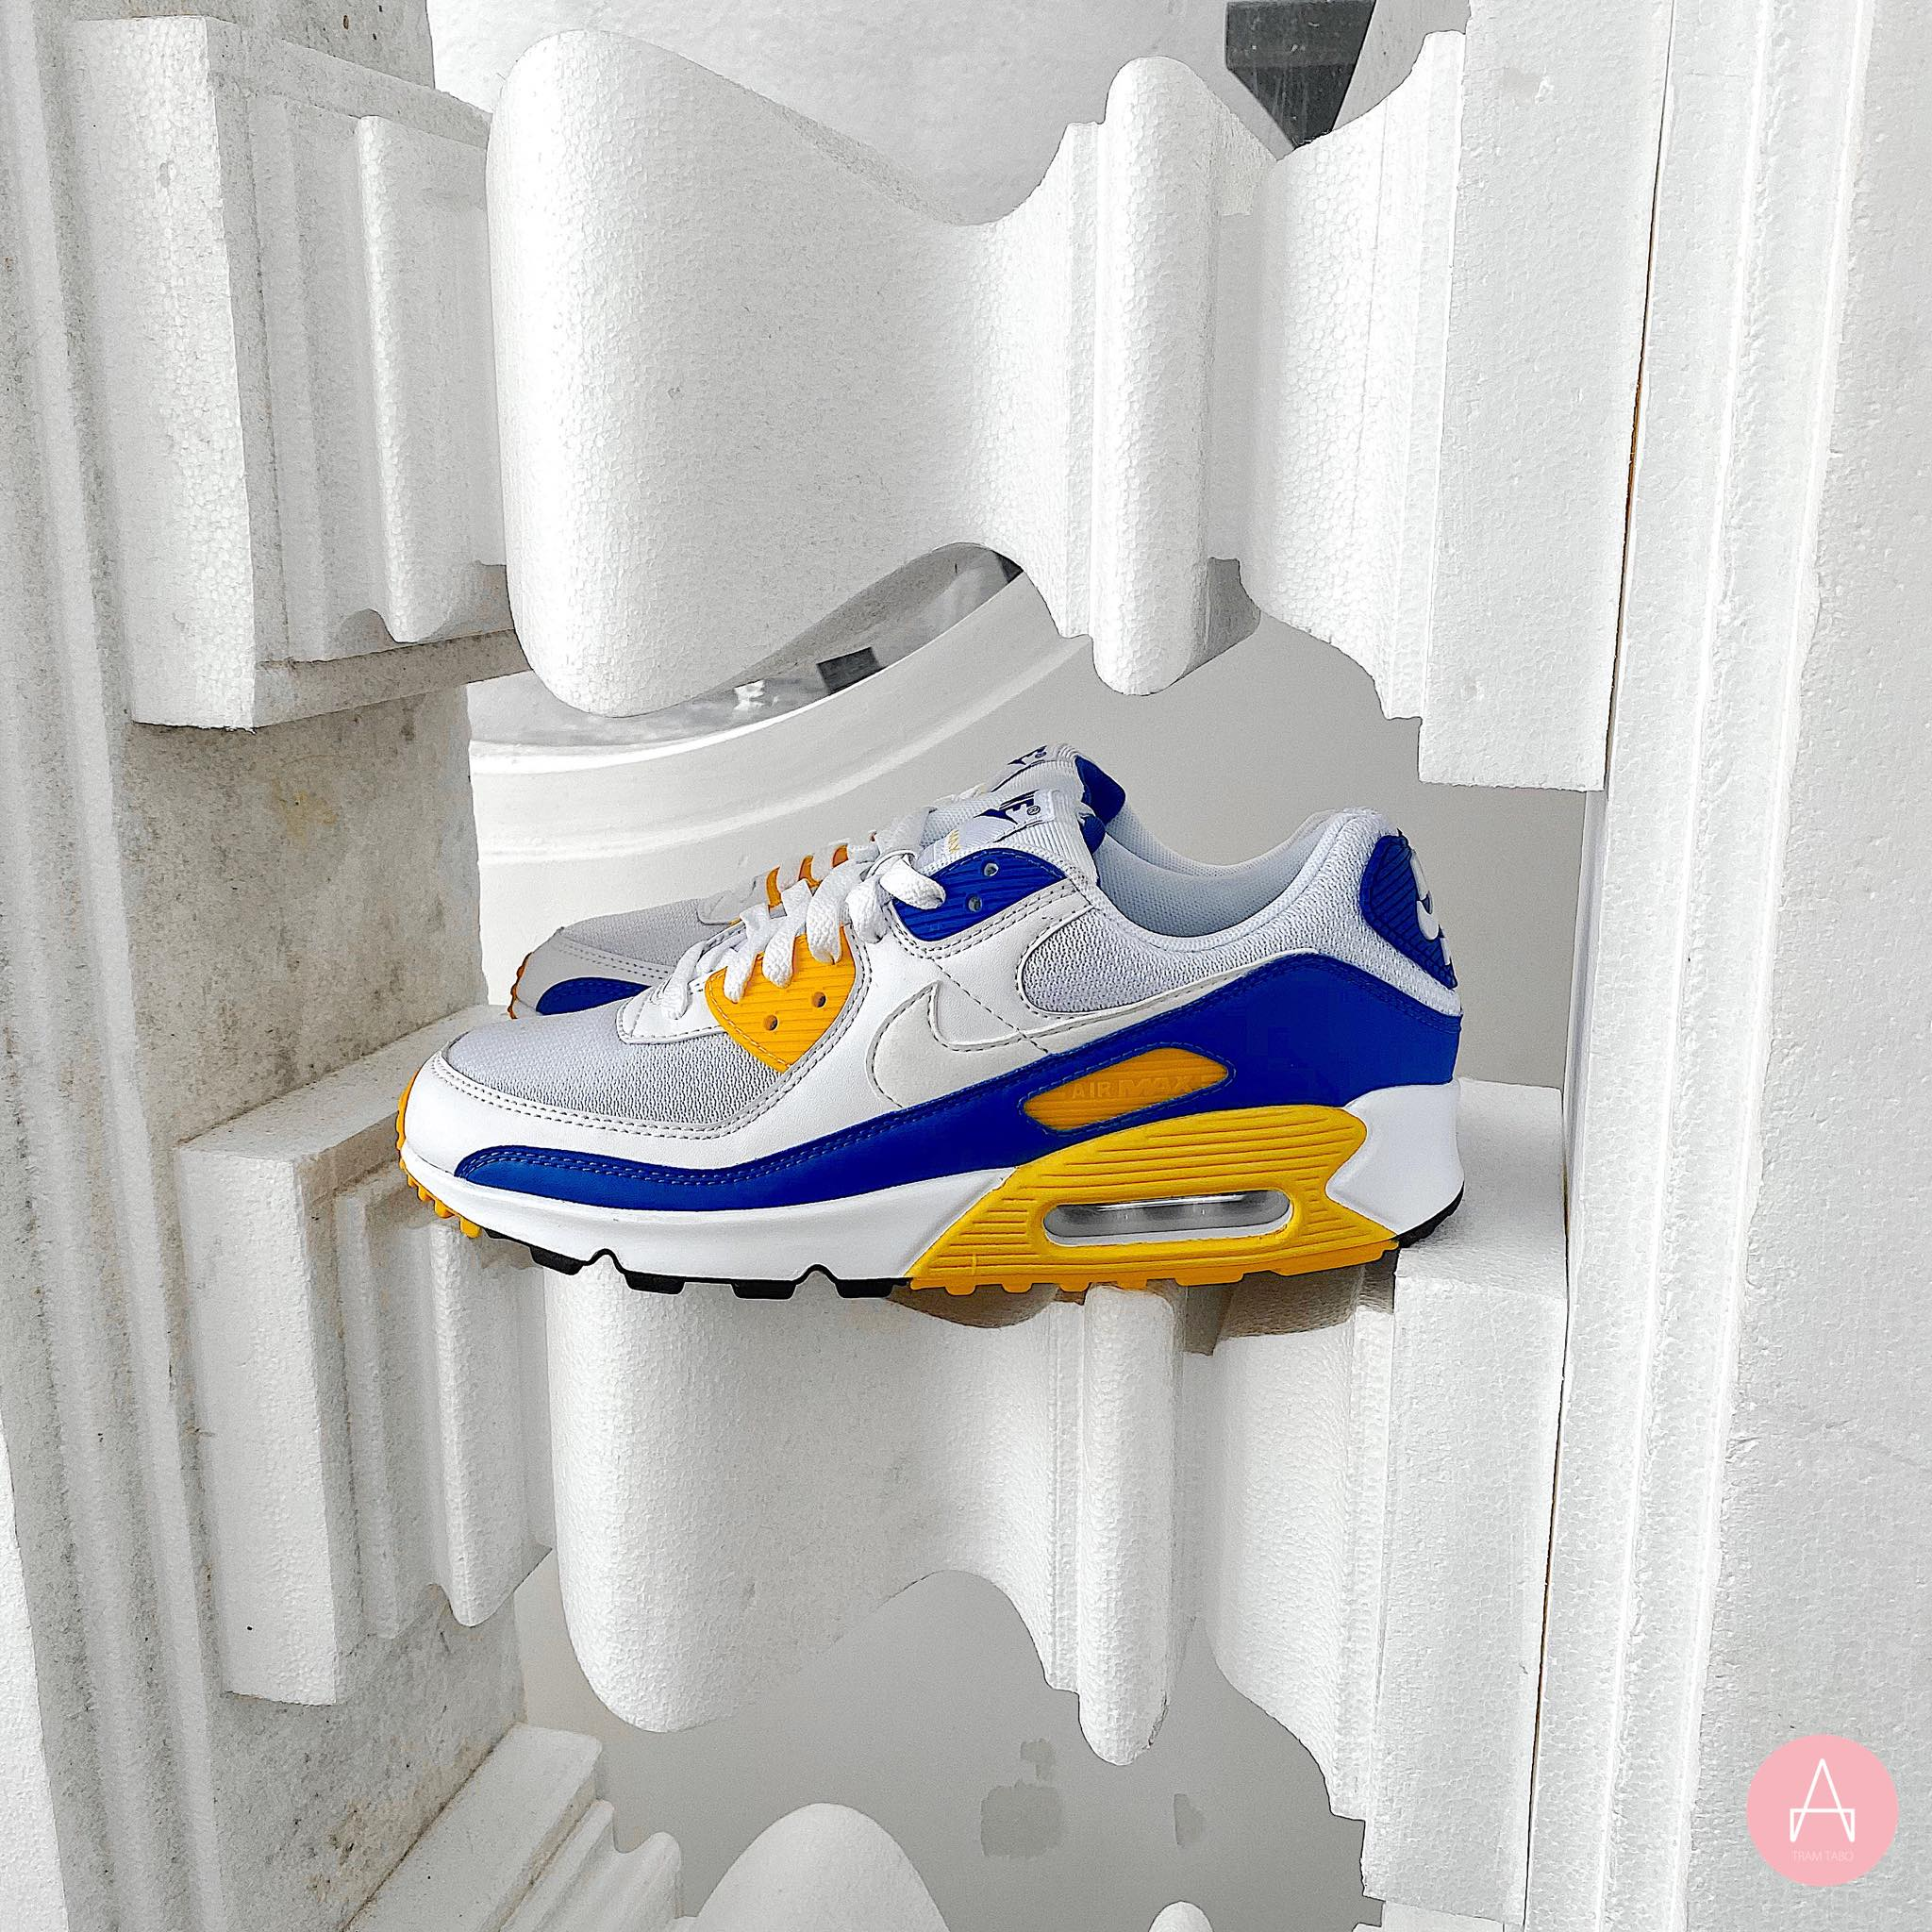 [CT4352-101] M NIKE AIR MAX 90 WHITE/WHITE-VARSITY MAIZE